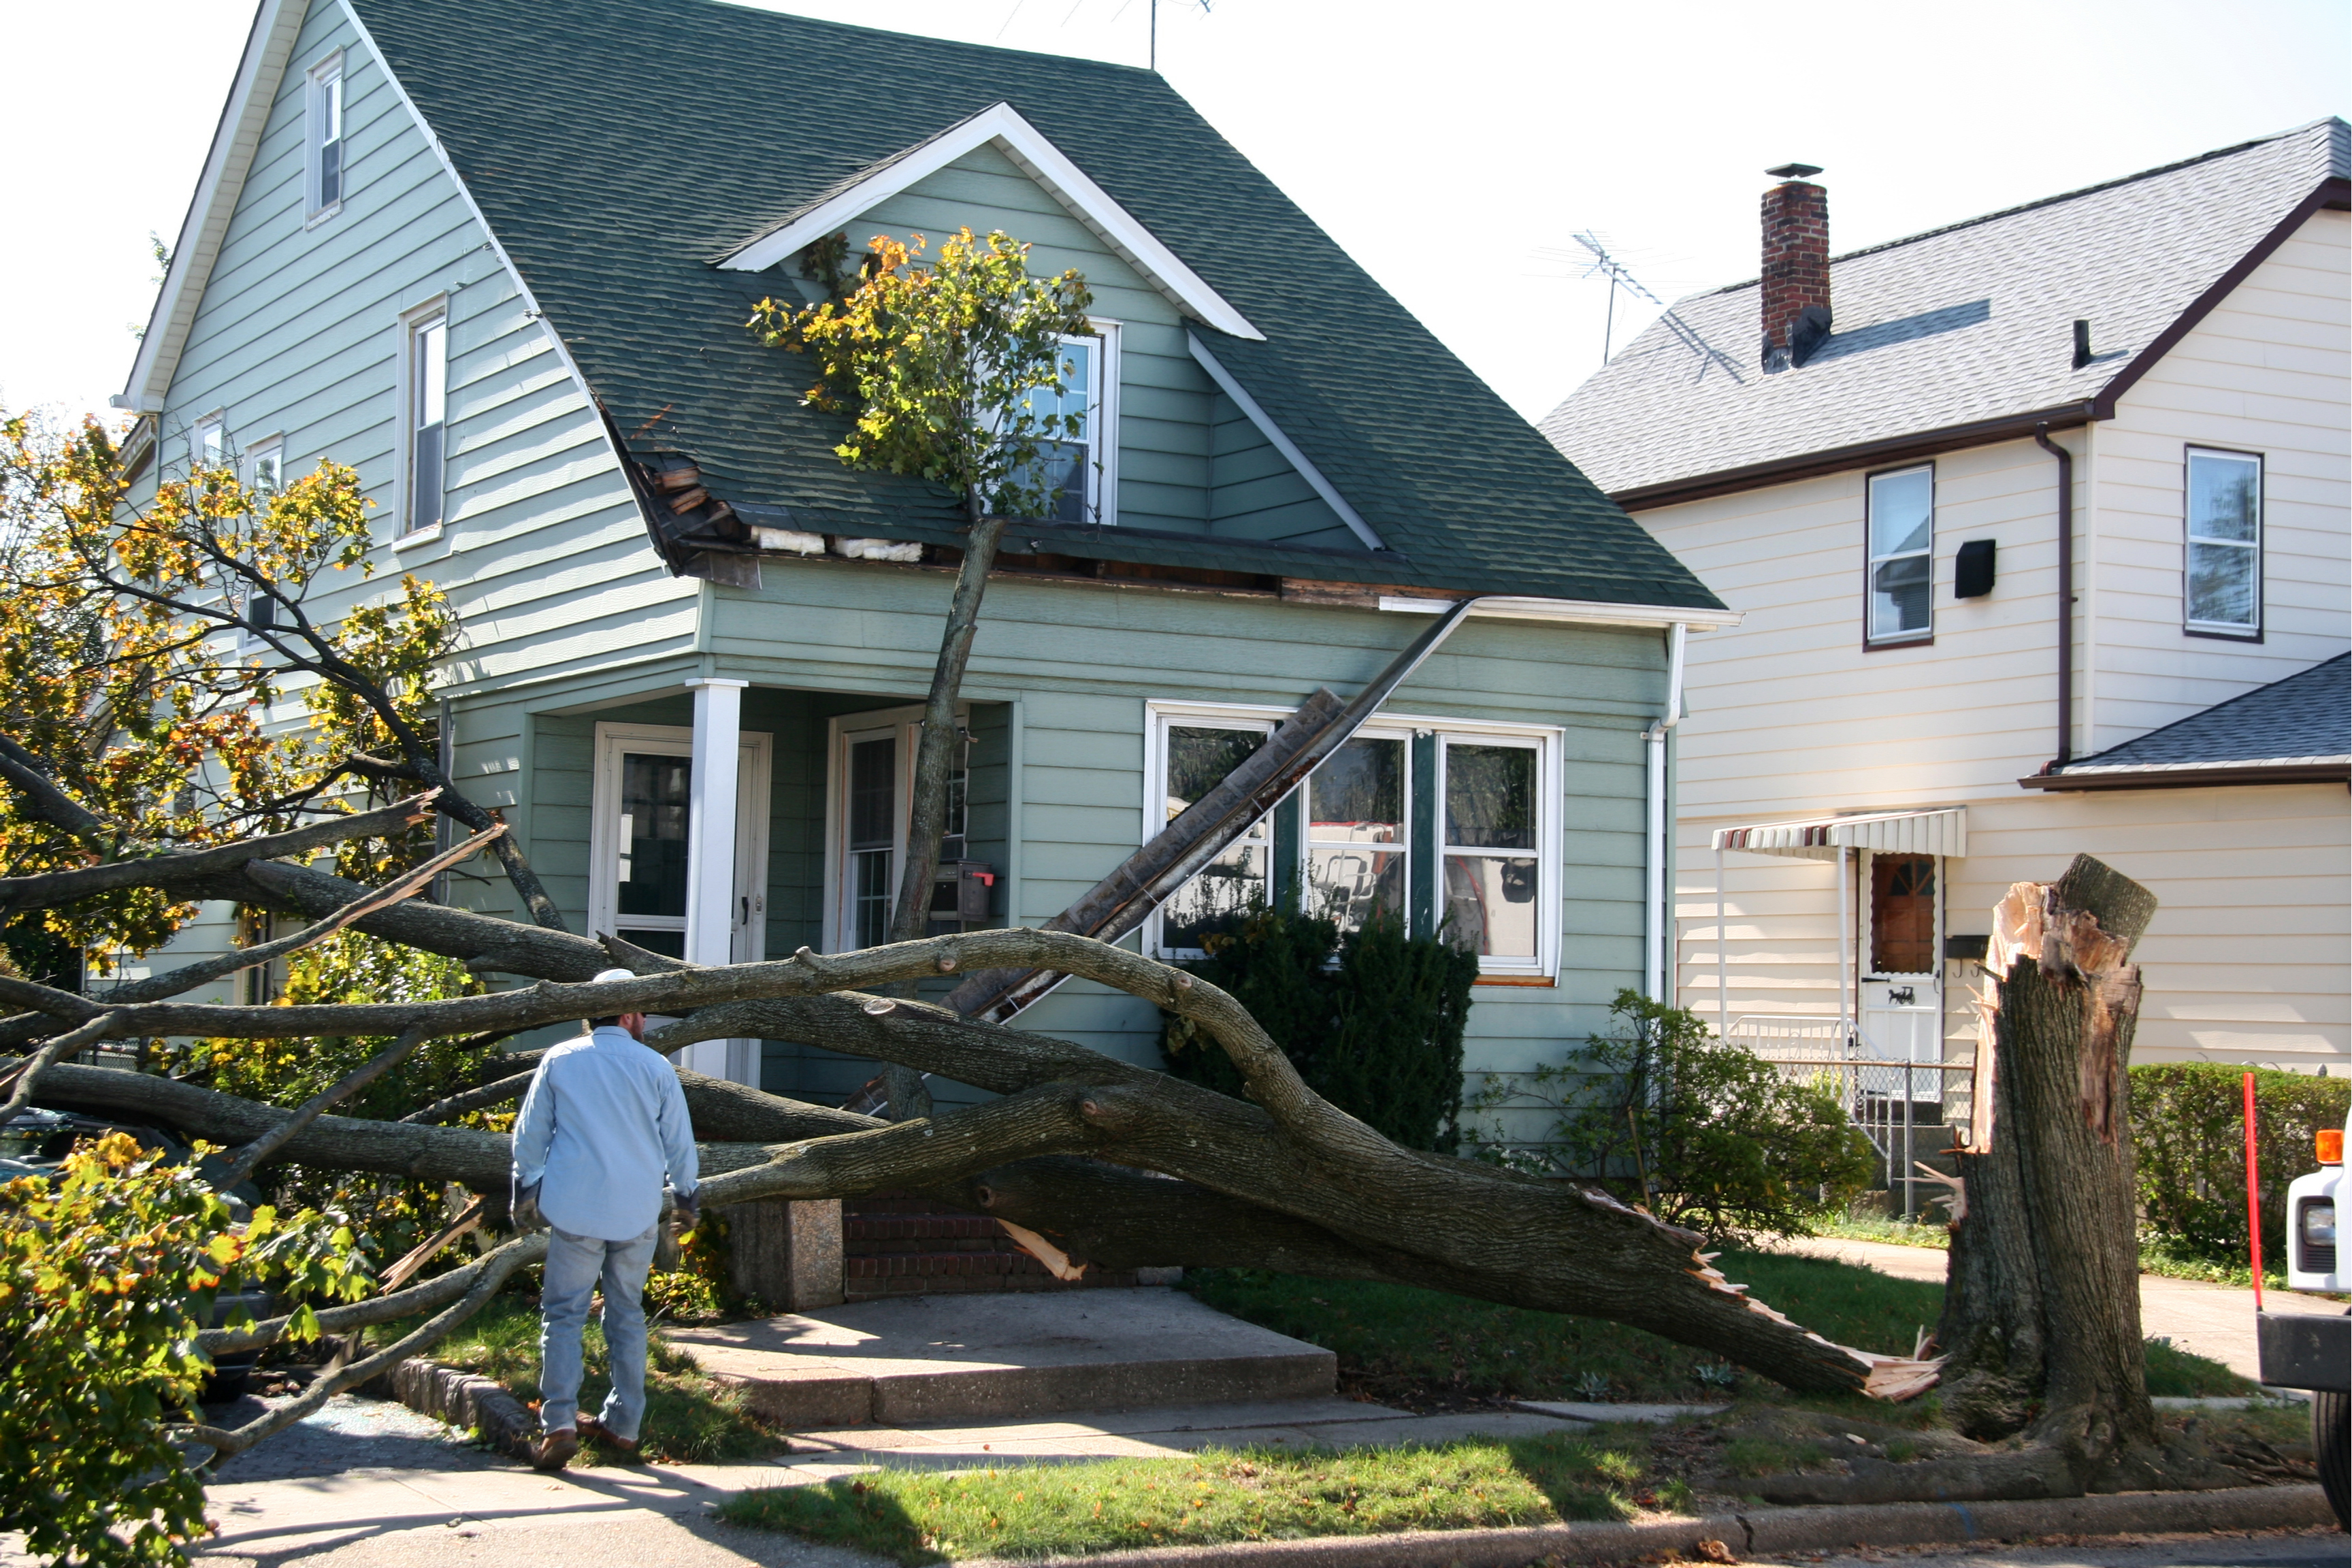 A home damaged in a storm by a fallen tree.